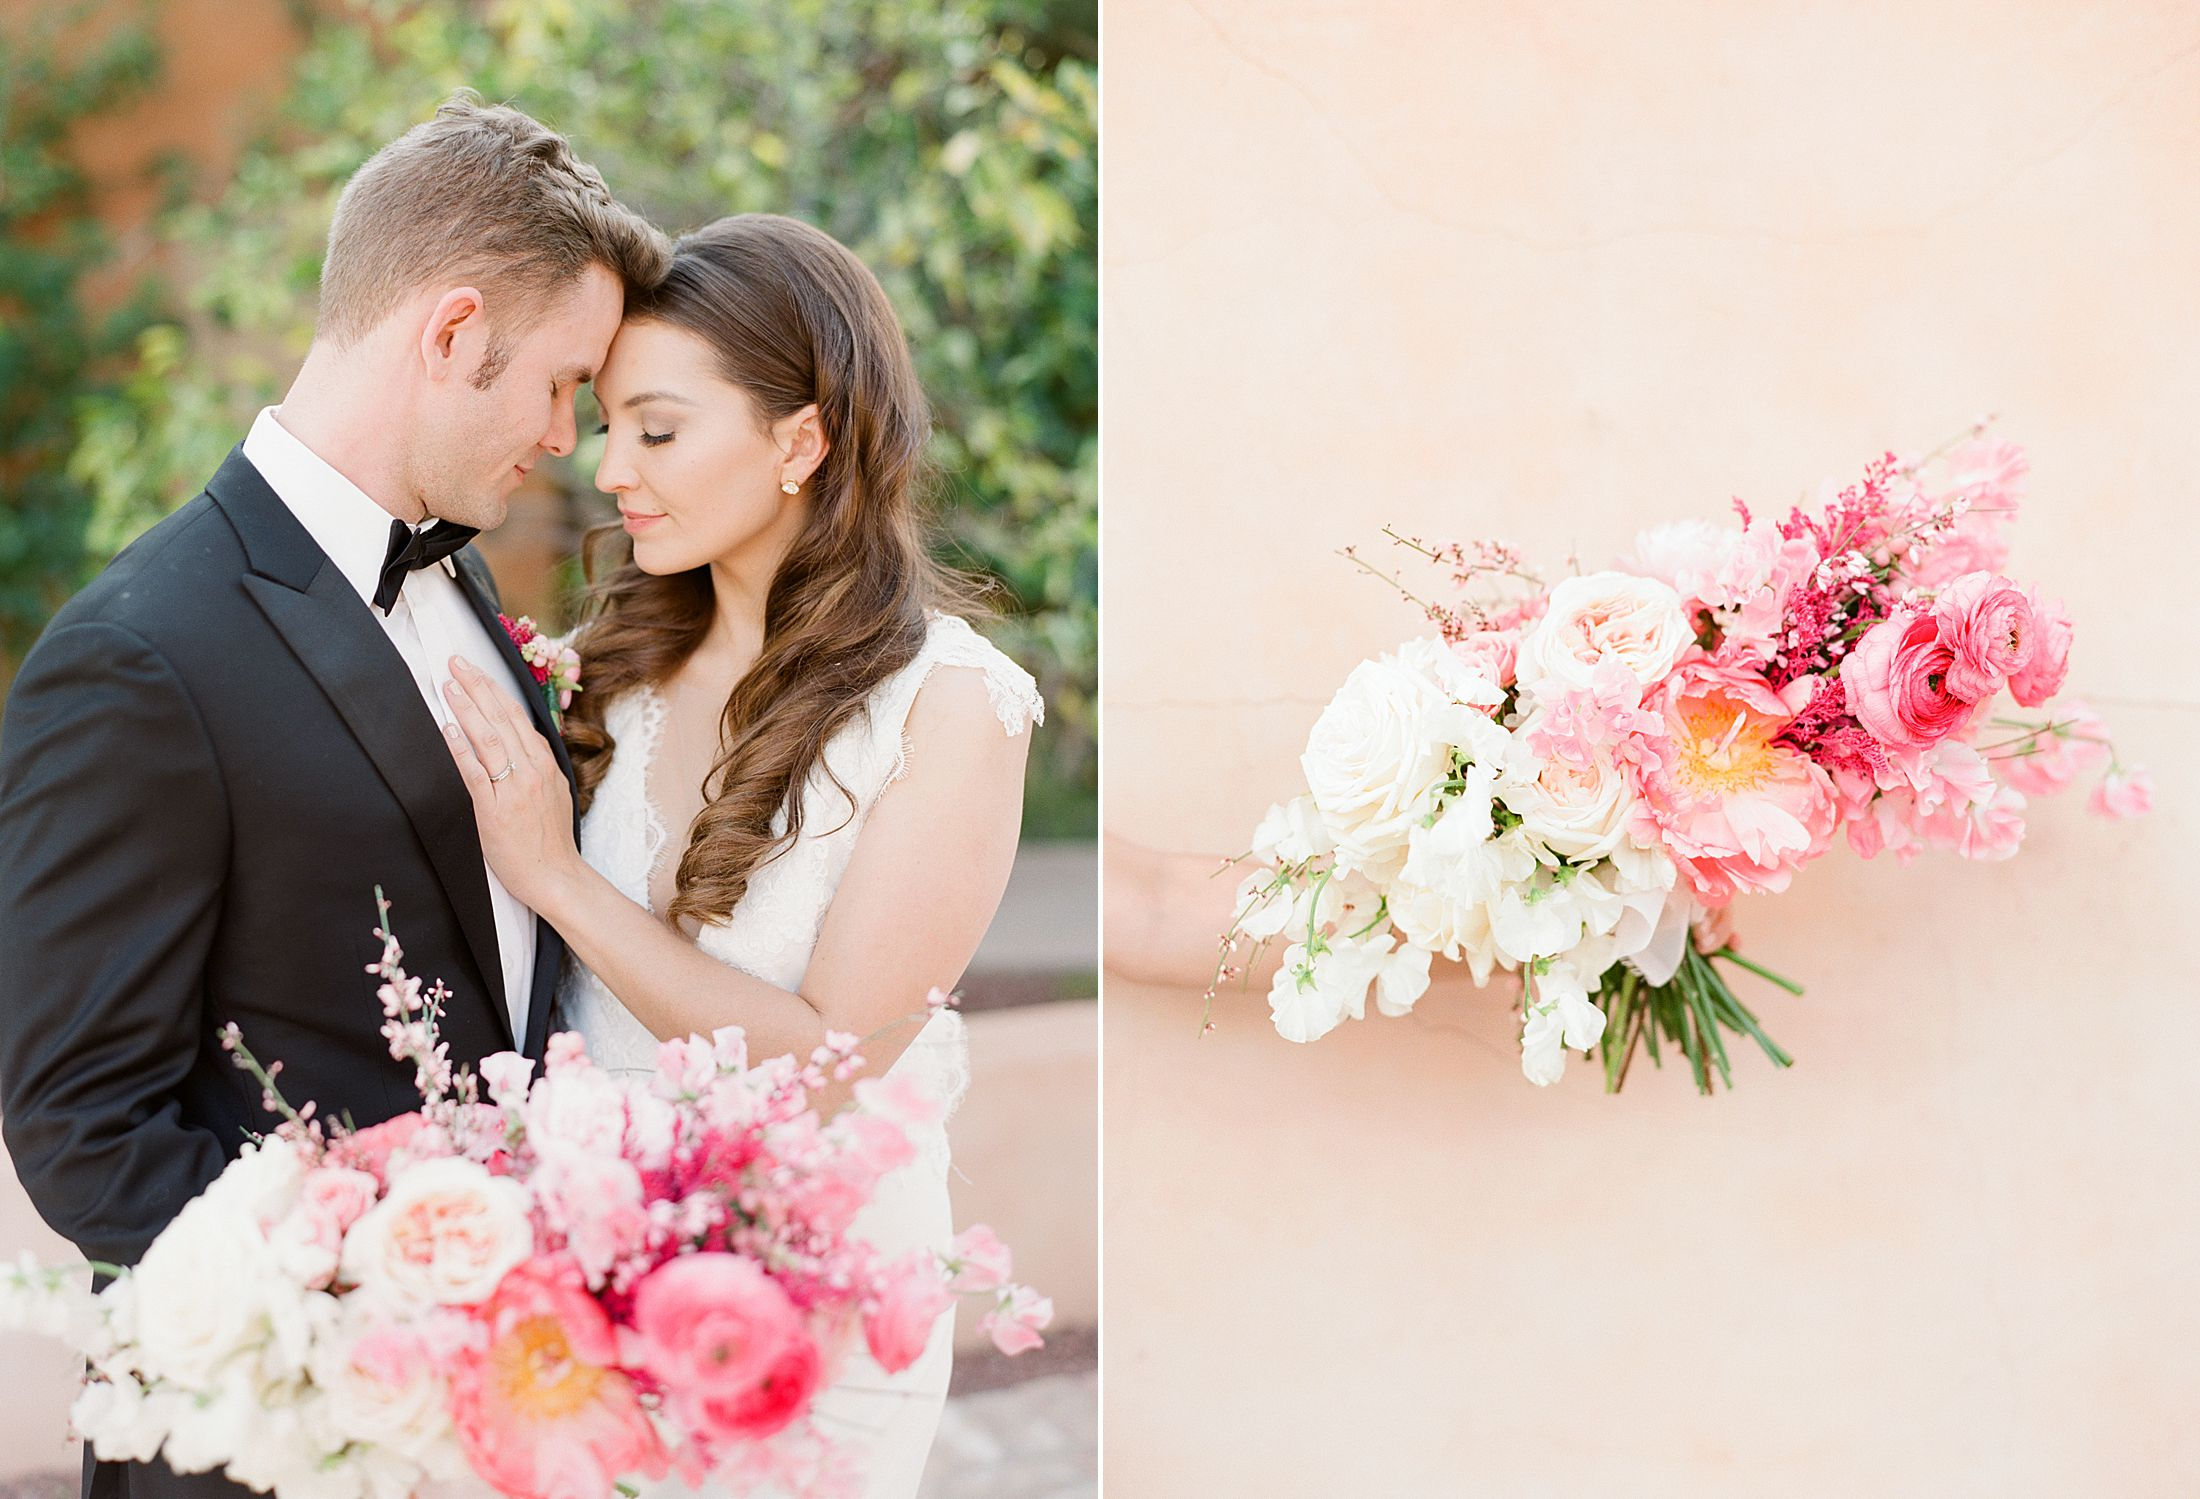 Pink Ombre Wedding Inspiration on Style Me Pretty - Royal Palms Wedding - Scottsdale Wedding - Ashley Baumgartner - Bloom and Blueprint - Wedding Puppies - Bulldog Puppies_0028.jpg